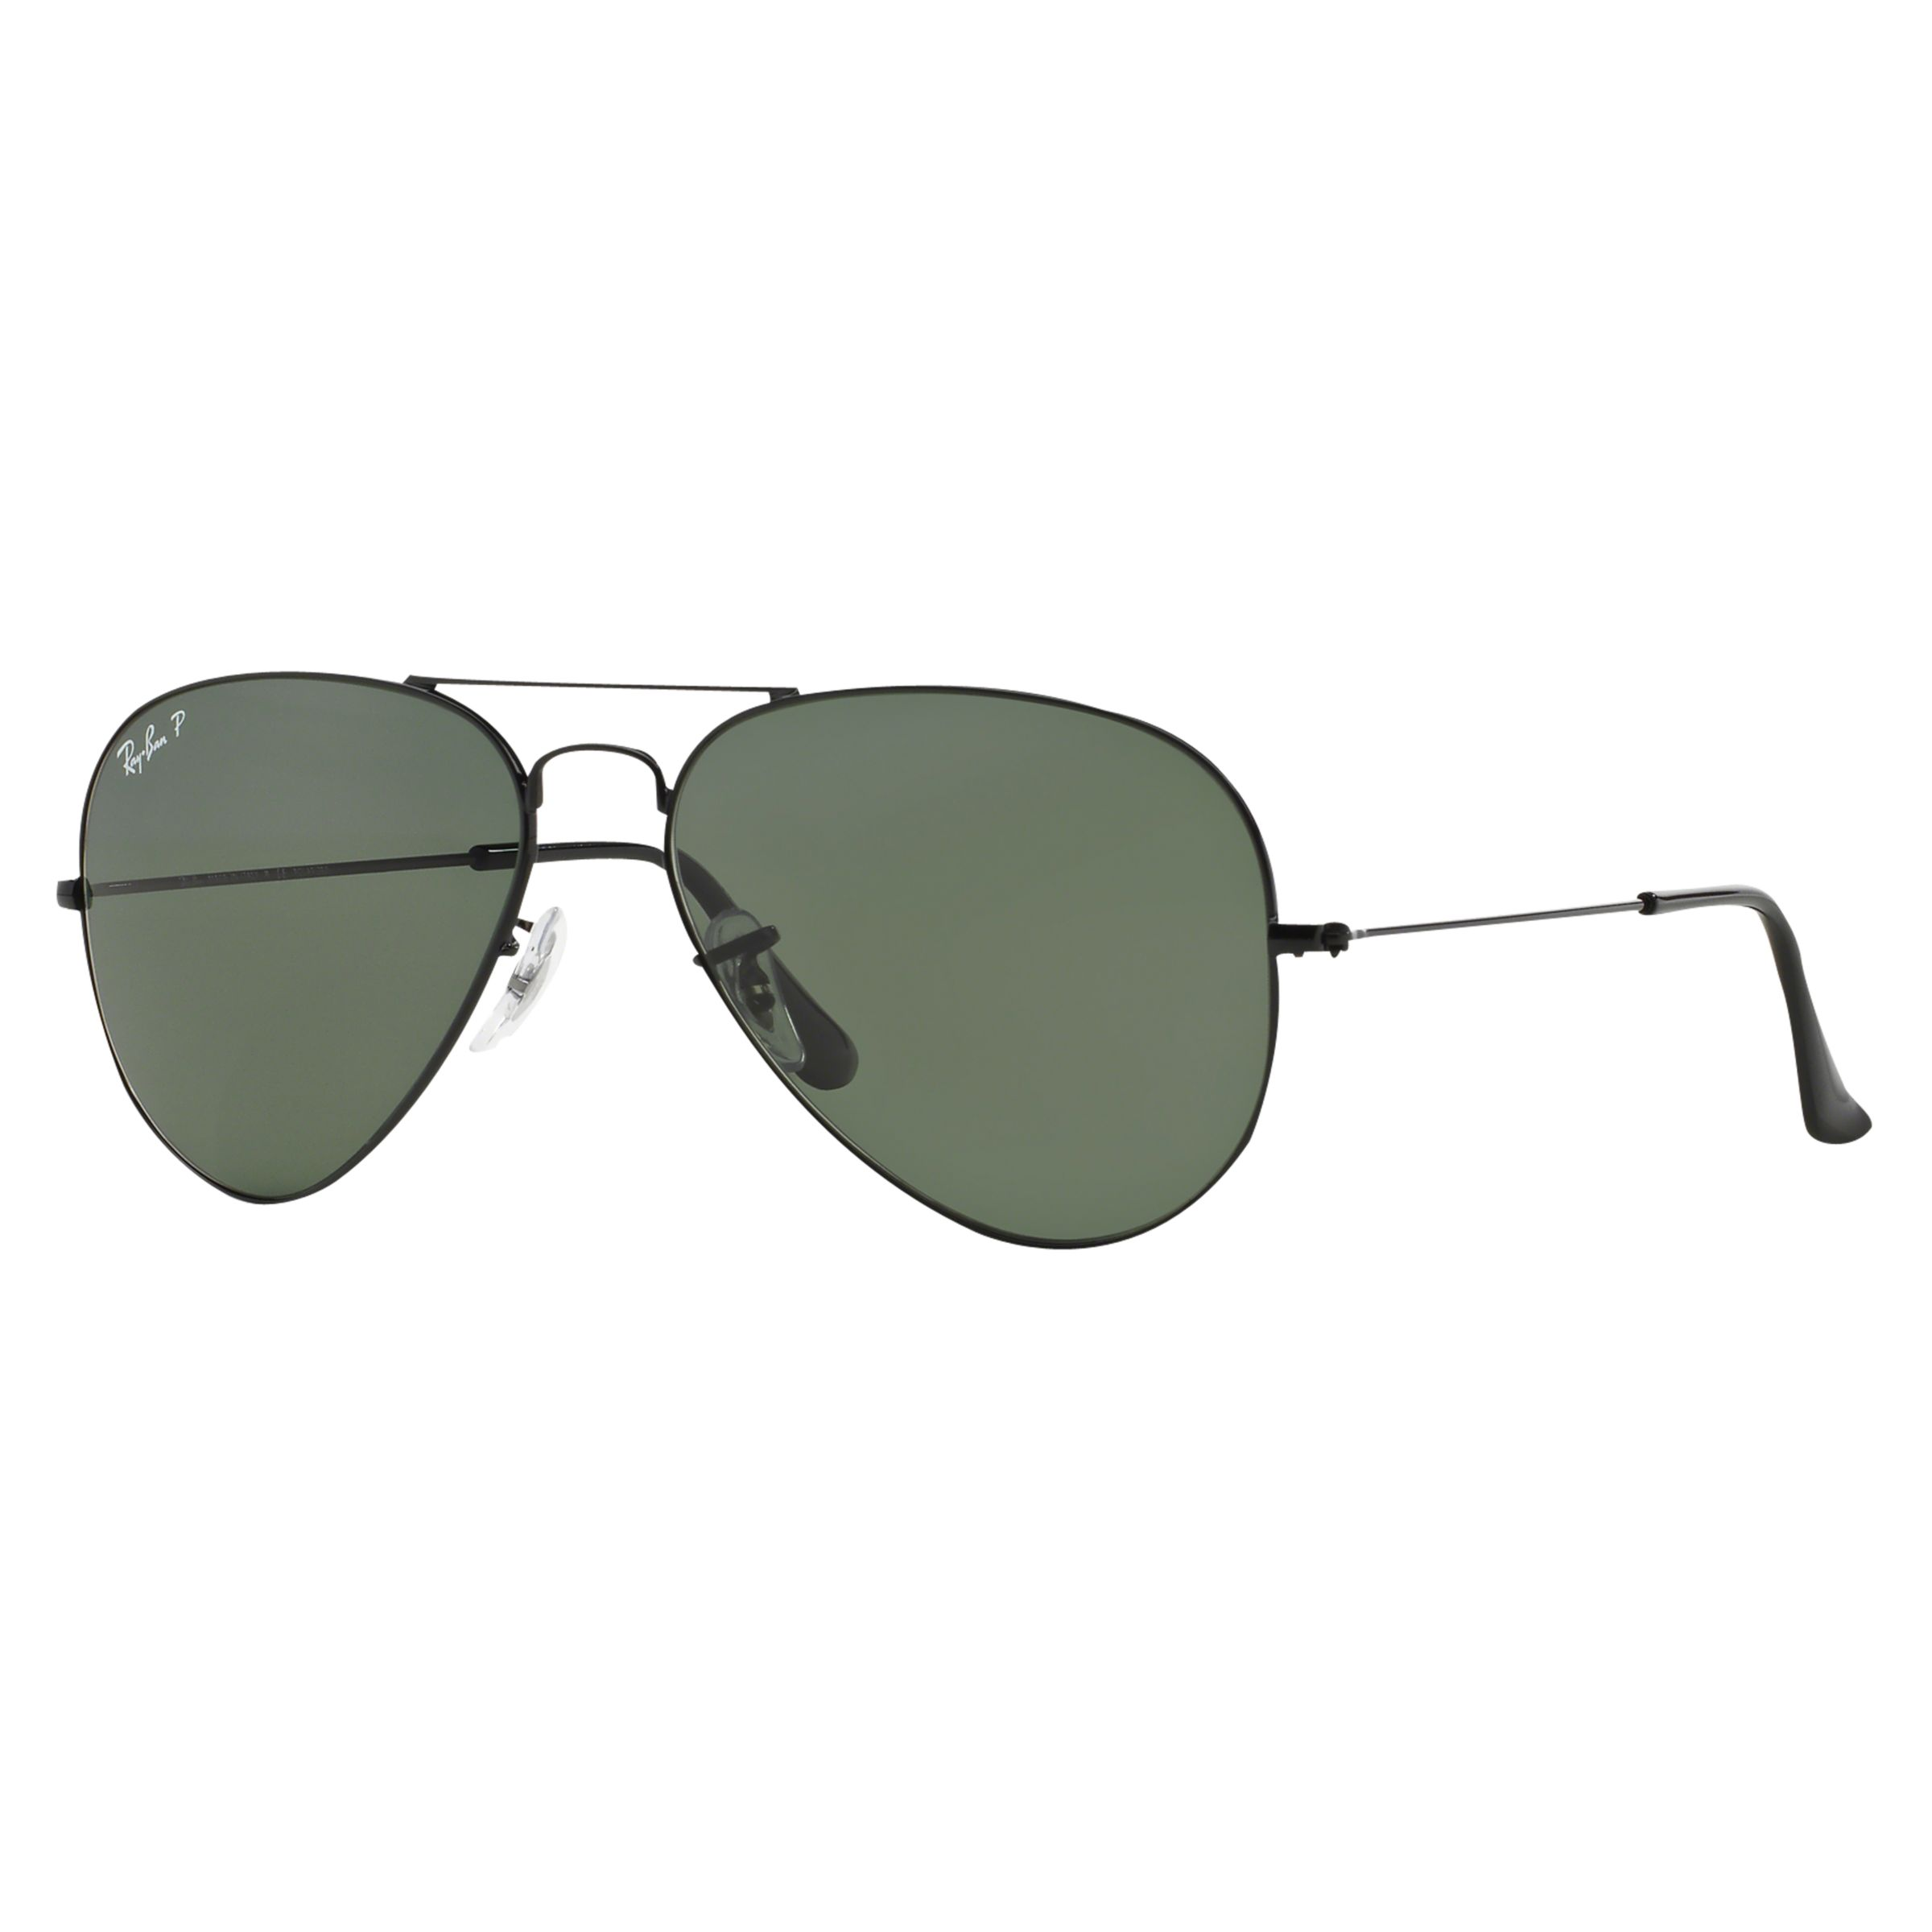 a77186bd822 Ray-Ban RB3025 Polarised Aviator Sunglasses